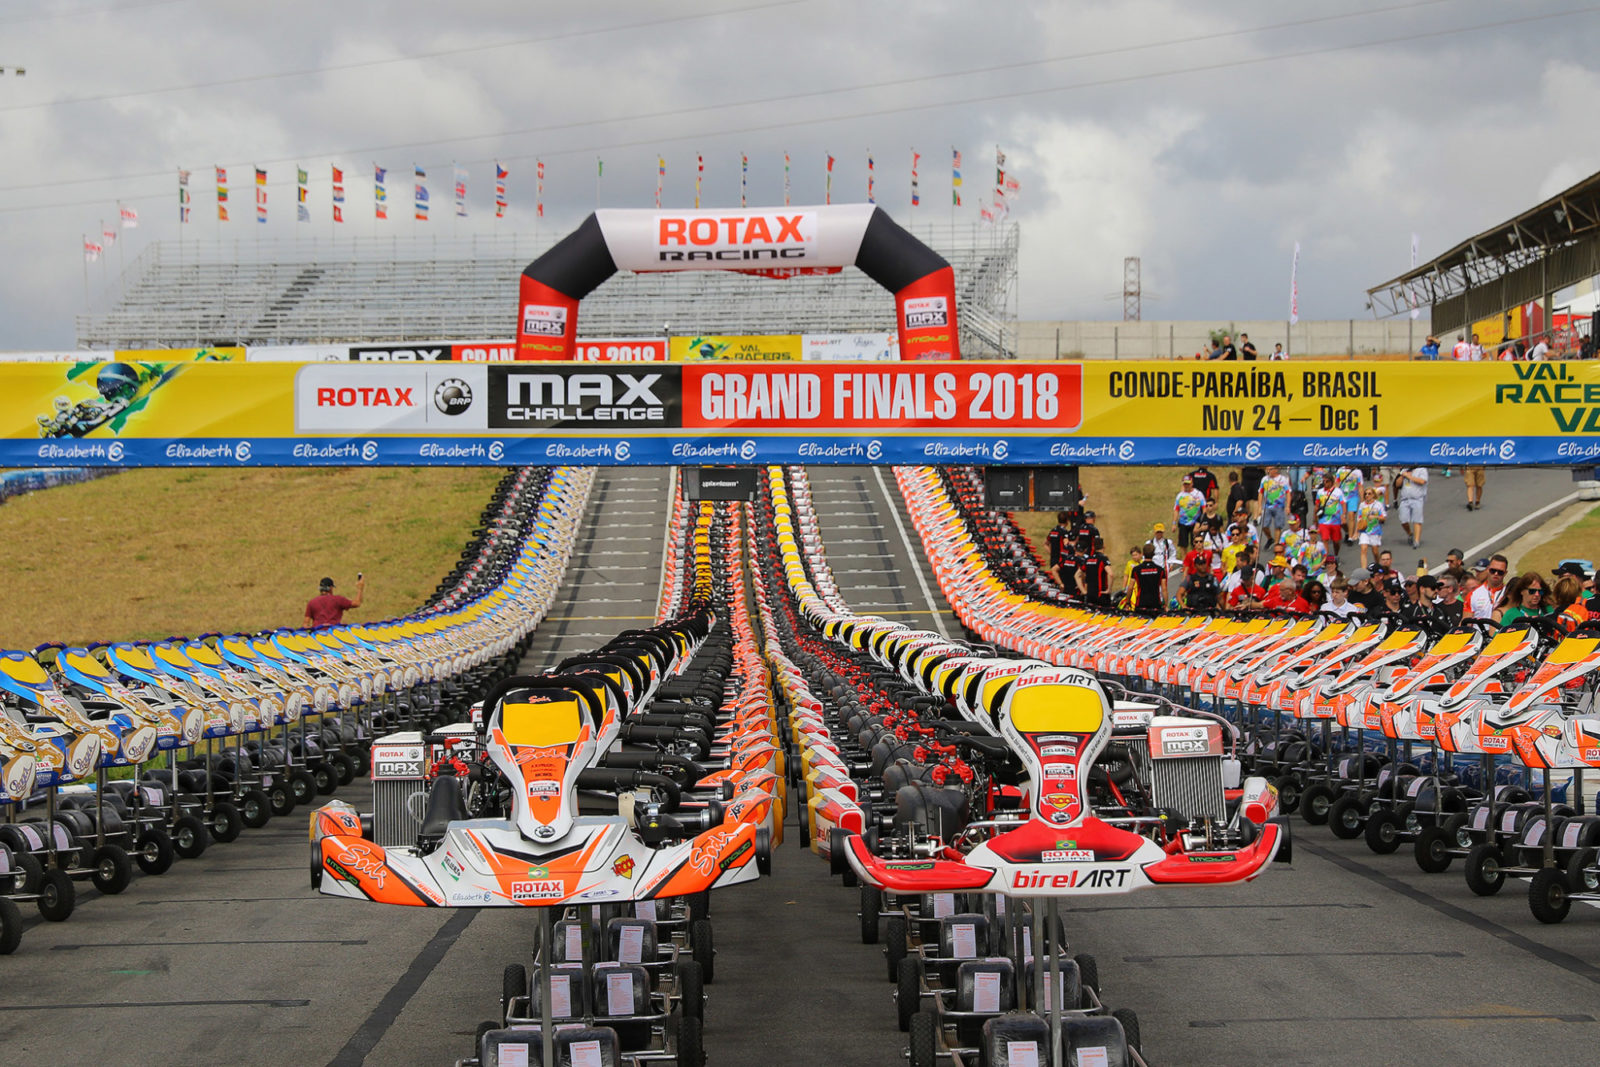 Presentation of karts at the 2018 Rotax Max Challenge Grand Finals, Brazil